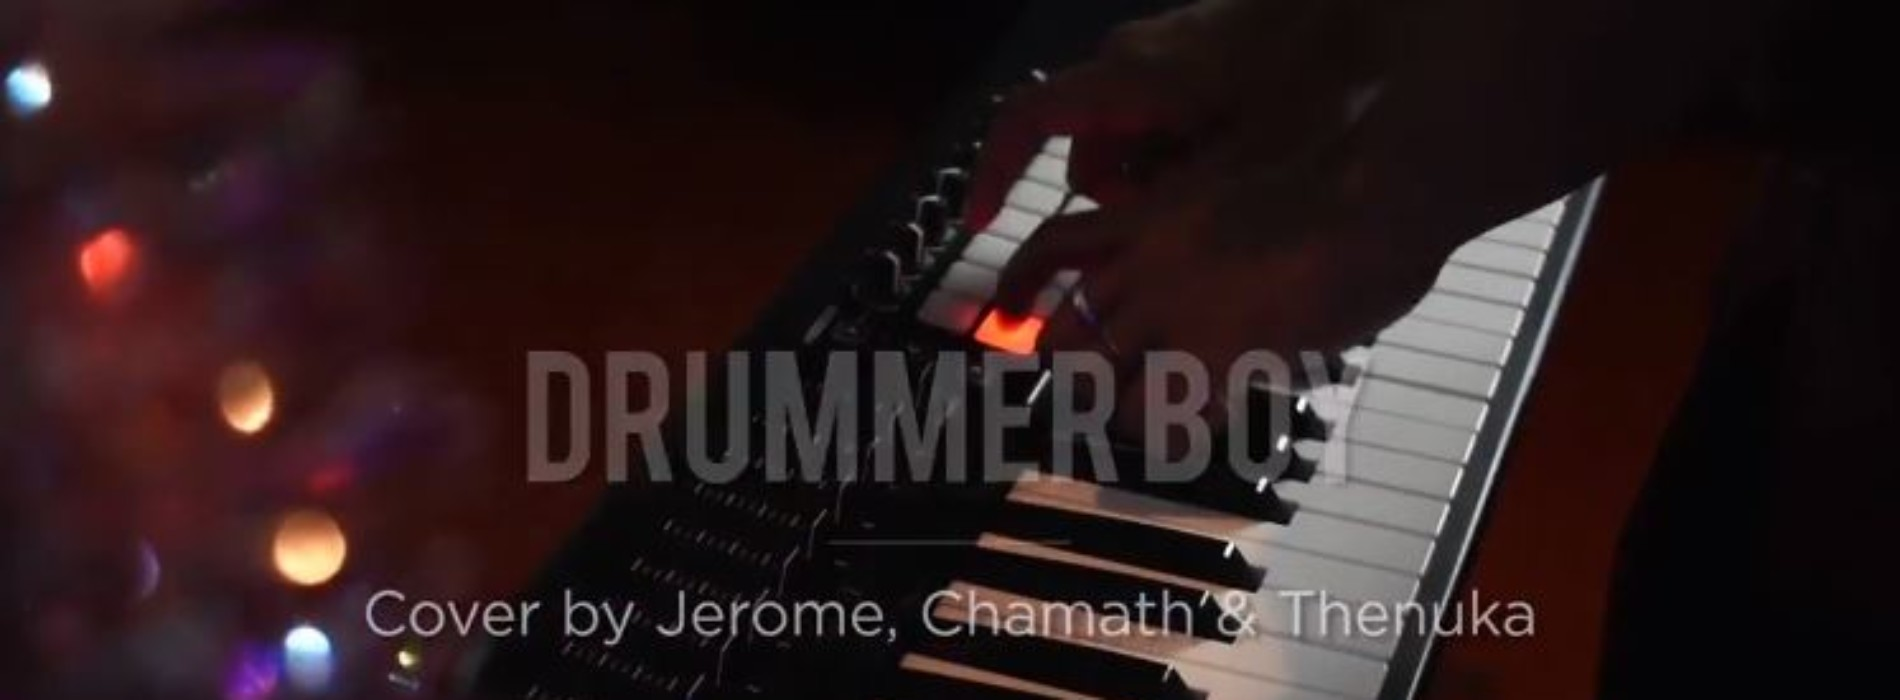 Jerome, Chamath & Thenuka – Drummer Boy (cover)